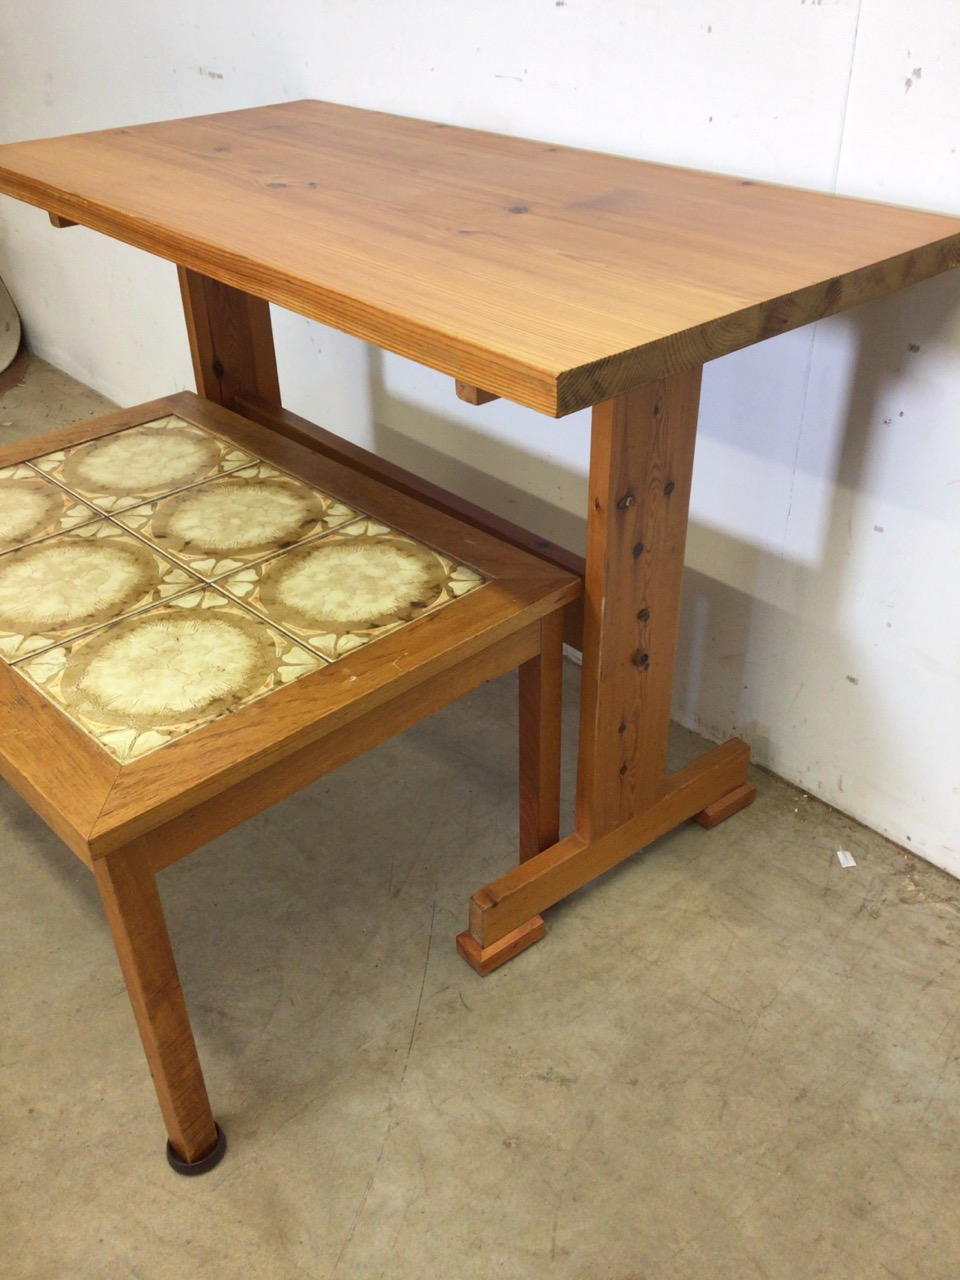 A pine table also with a tiled topped coffee table. W:107cm x D:52cm x H:74cm - Image 2 of 4